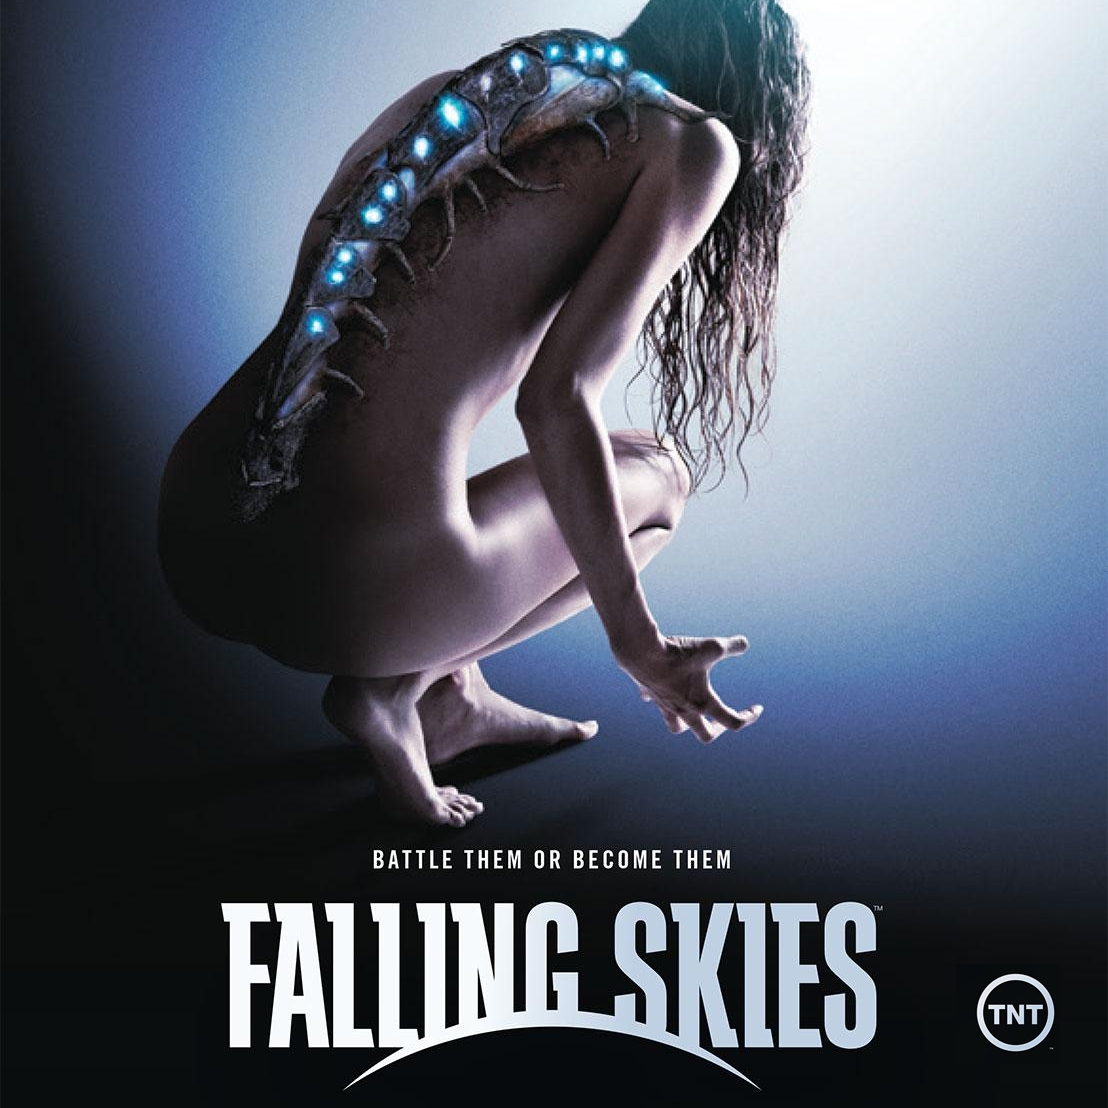 Falling Skies S01-04 BDRip/ DVDRip/ BluRay/ HDTV S04E12